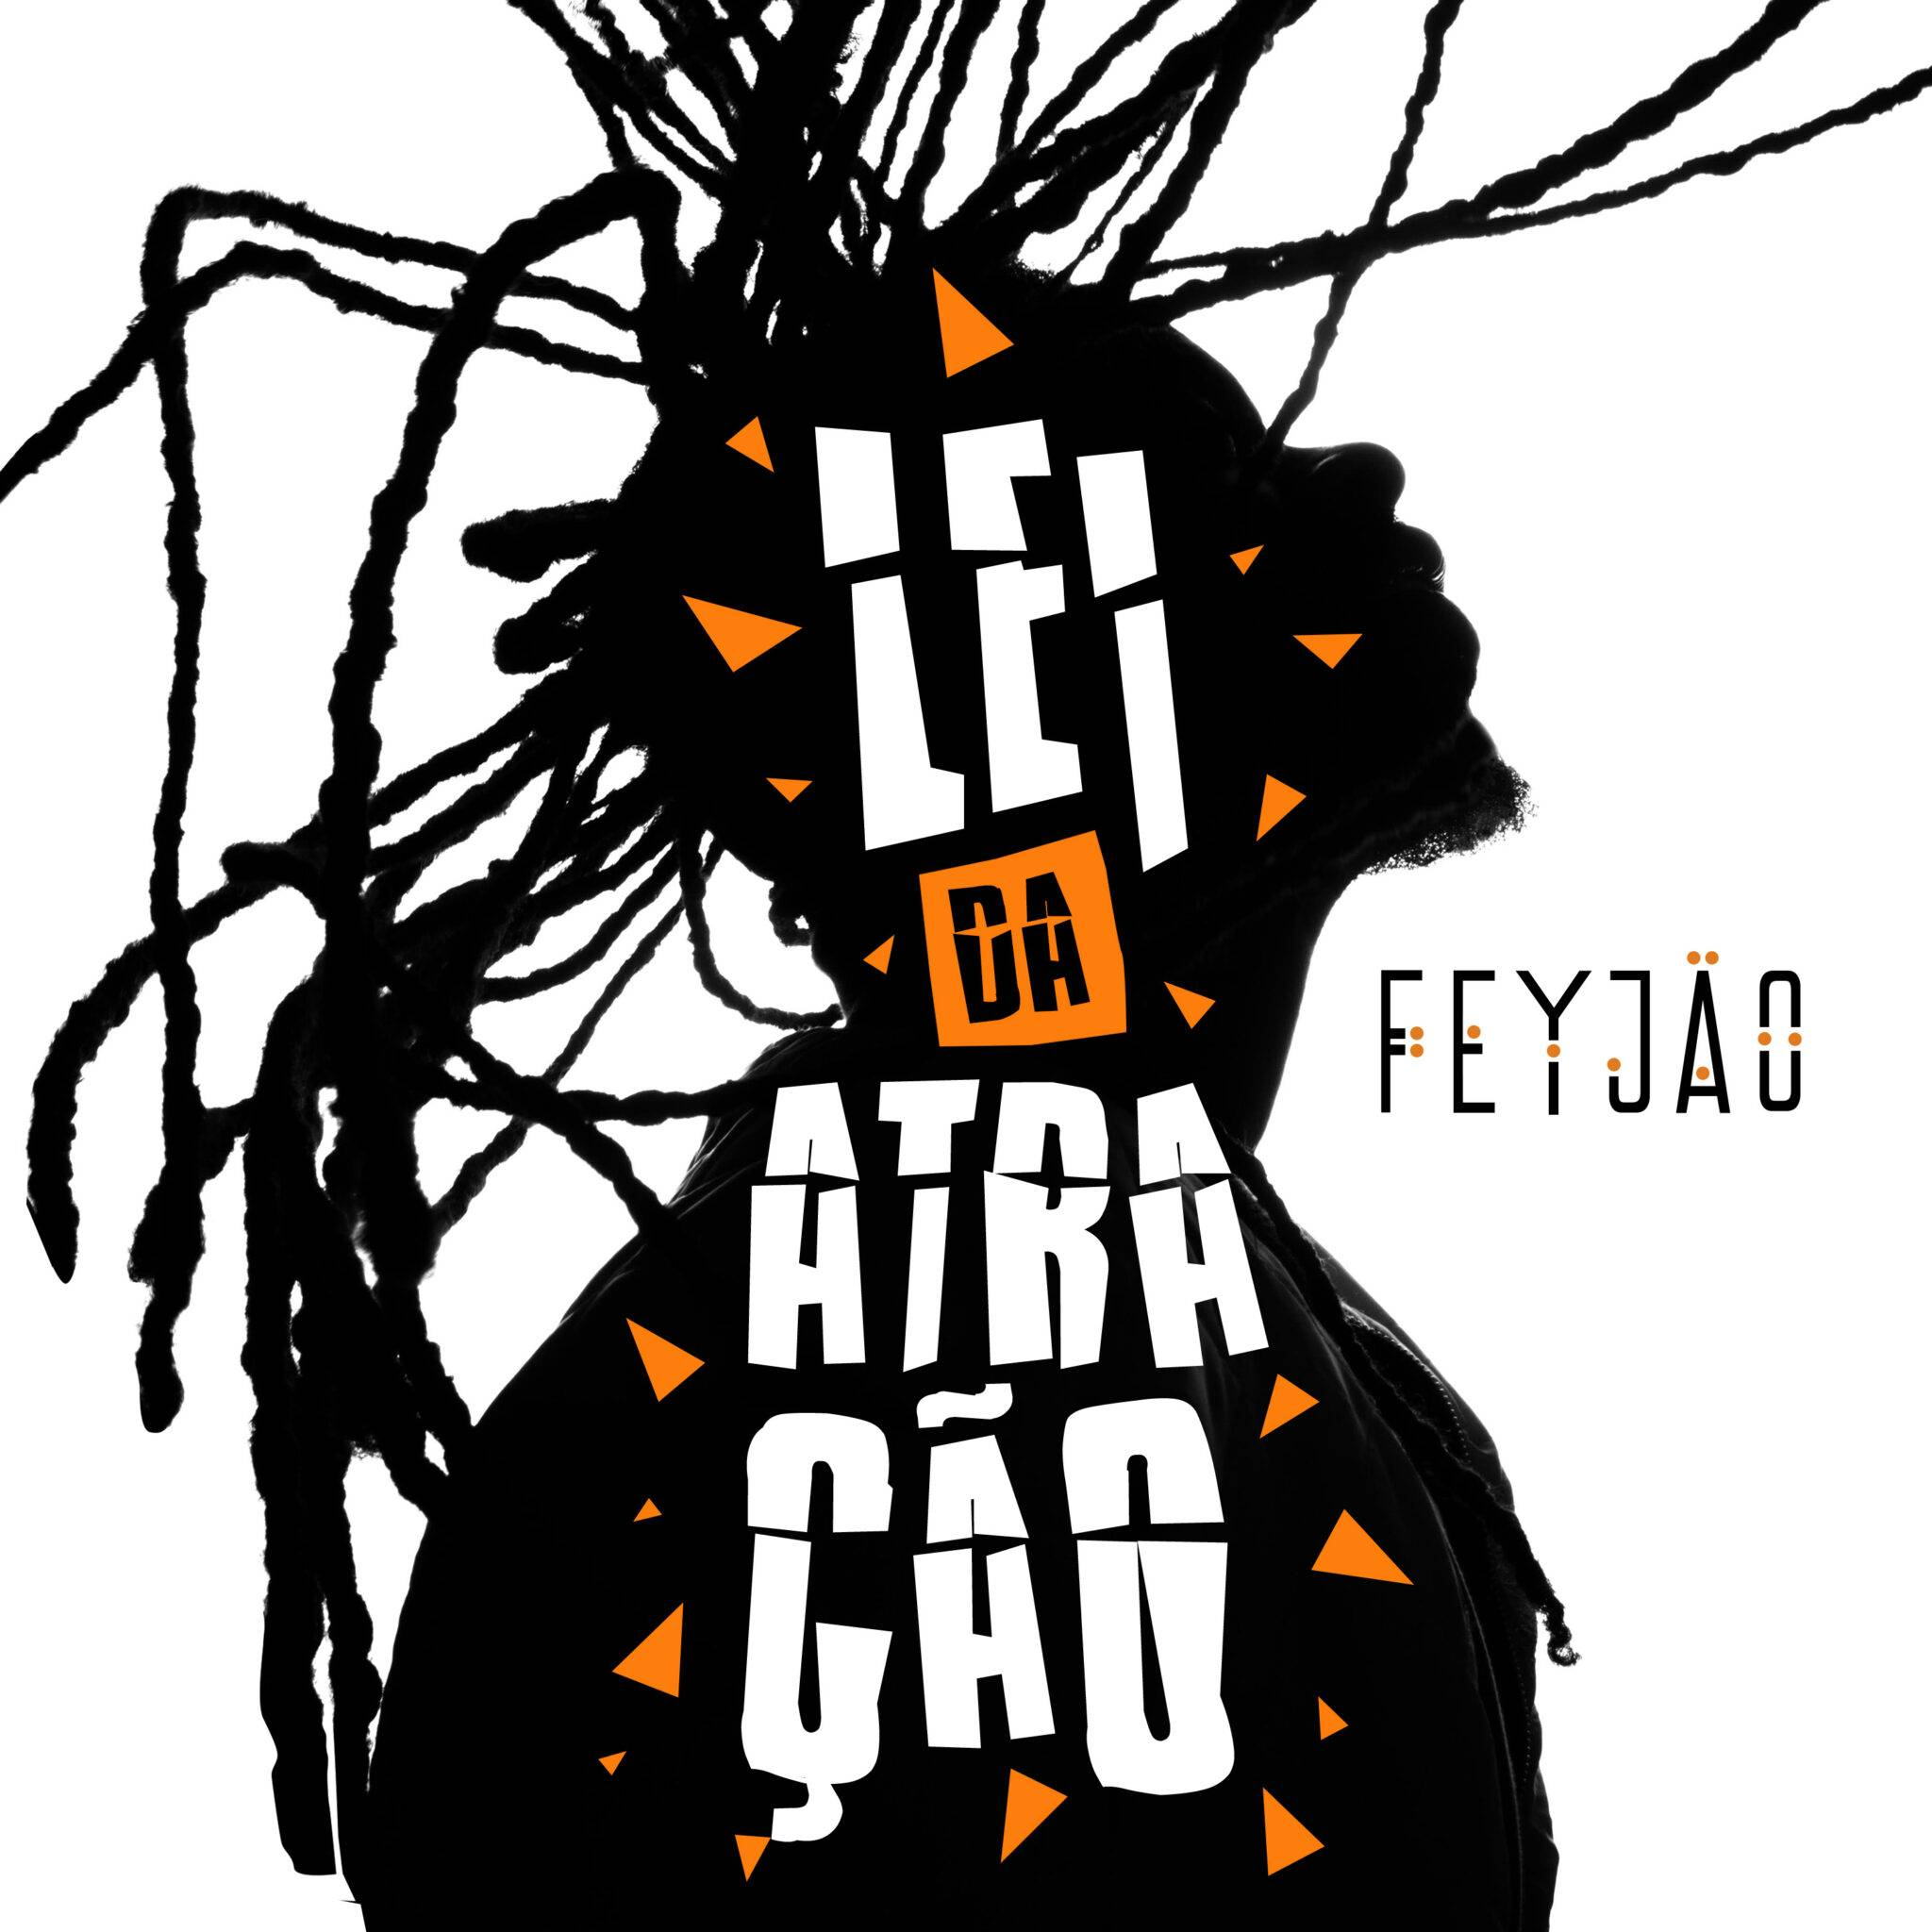 capa lei da atracao feyjao final scaled